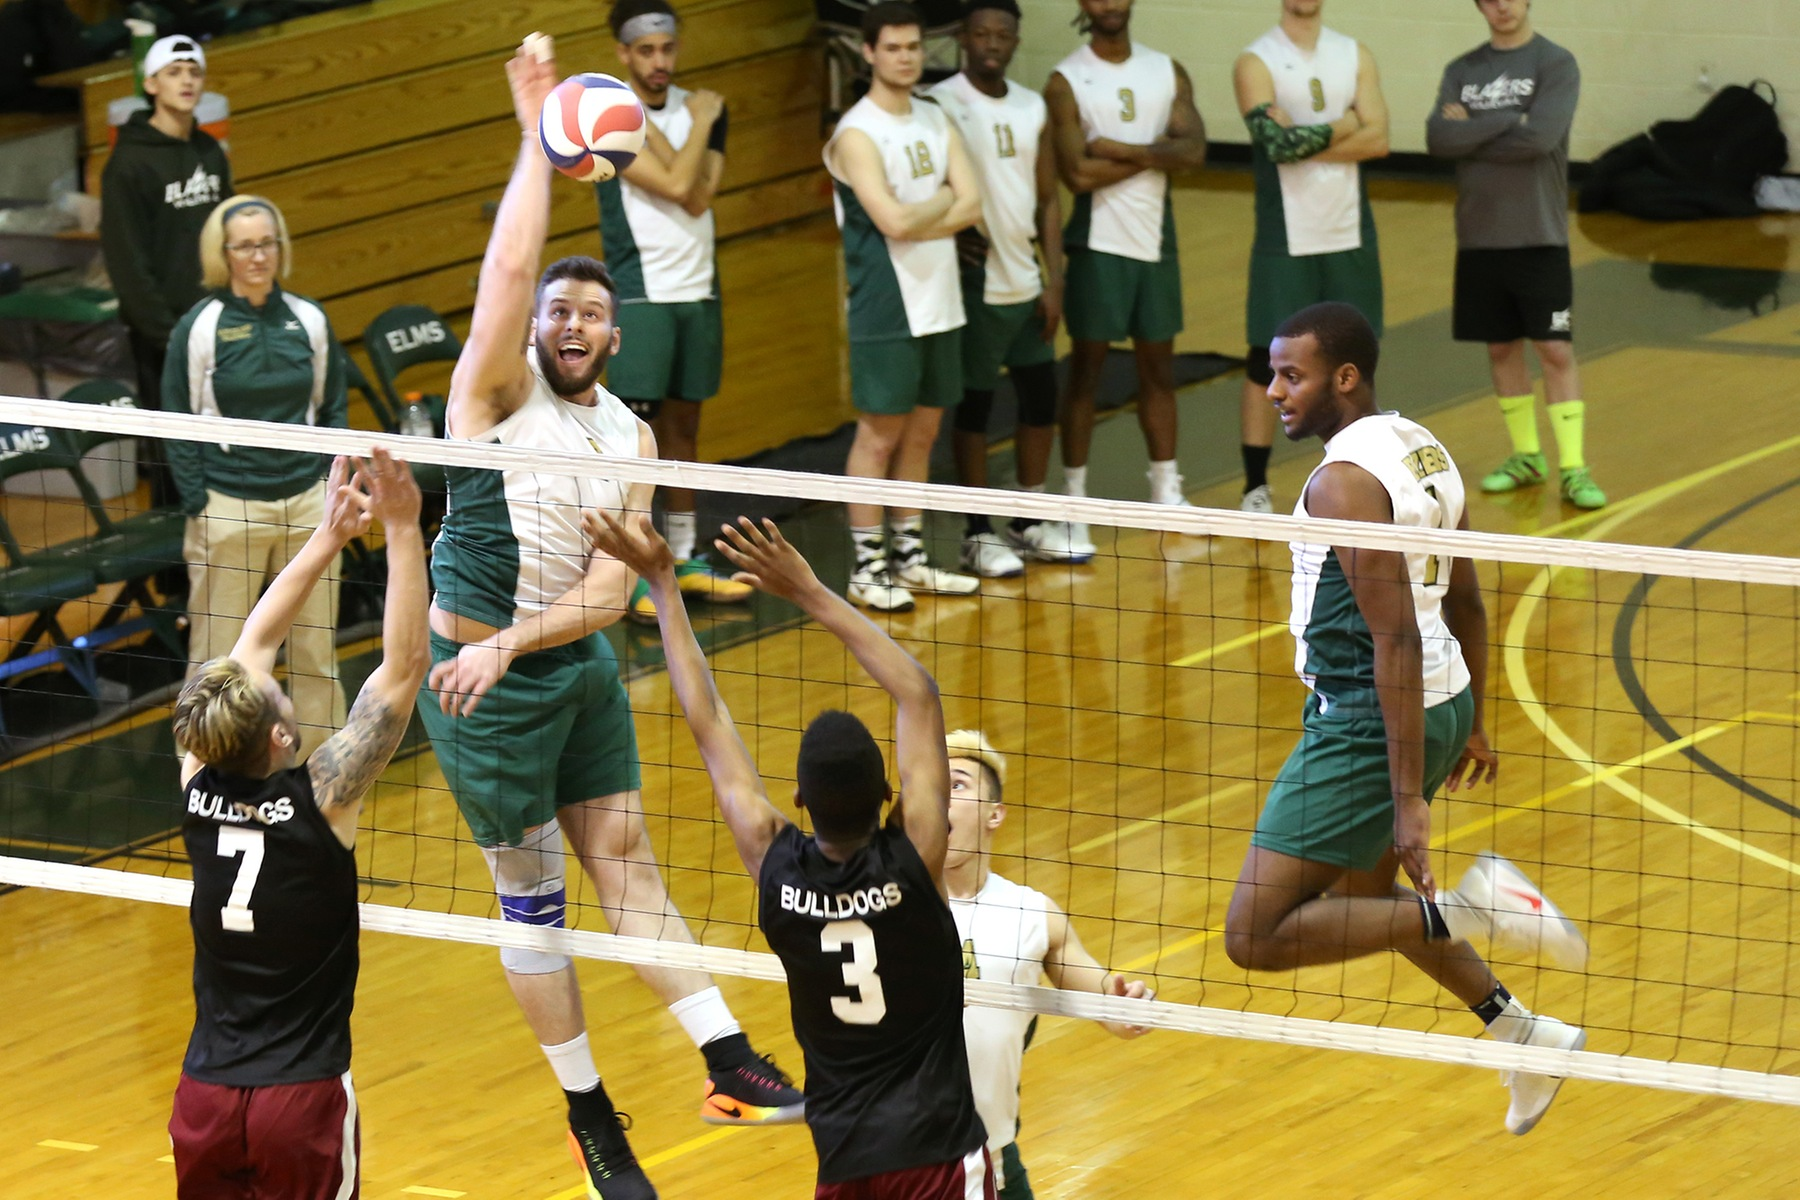 Men's Volleyball Punches Ticket To NECC Title Match